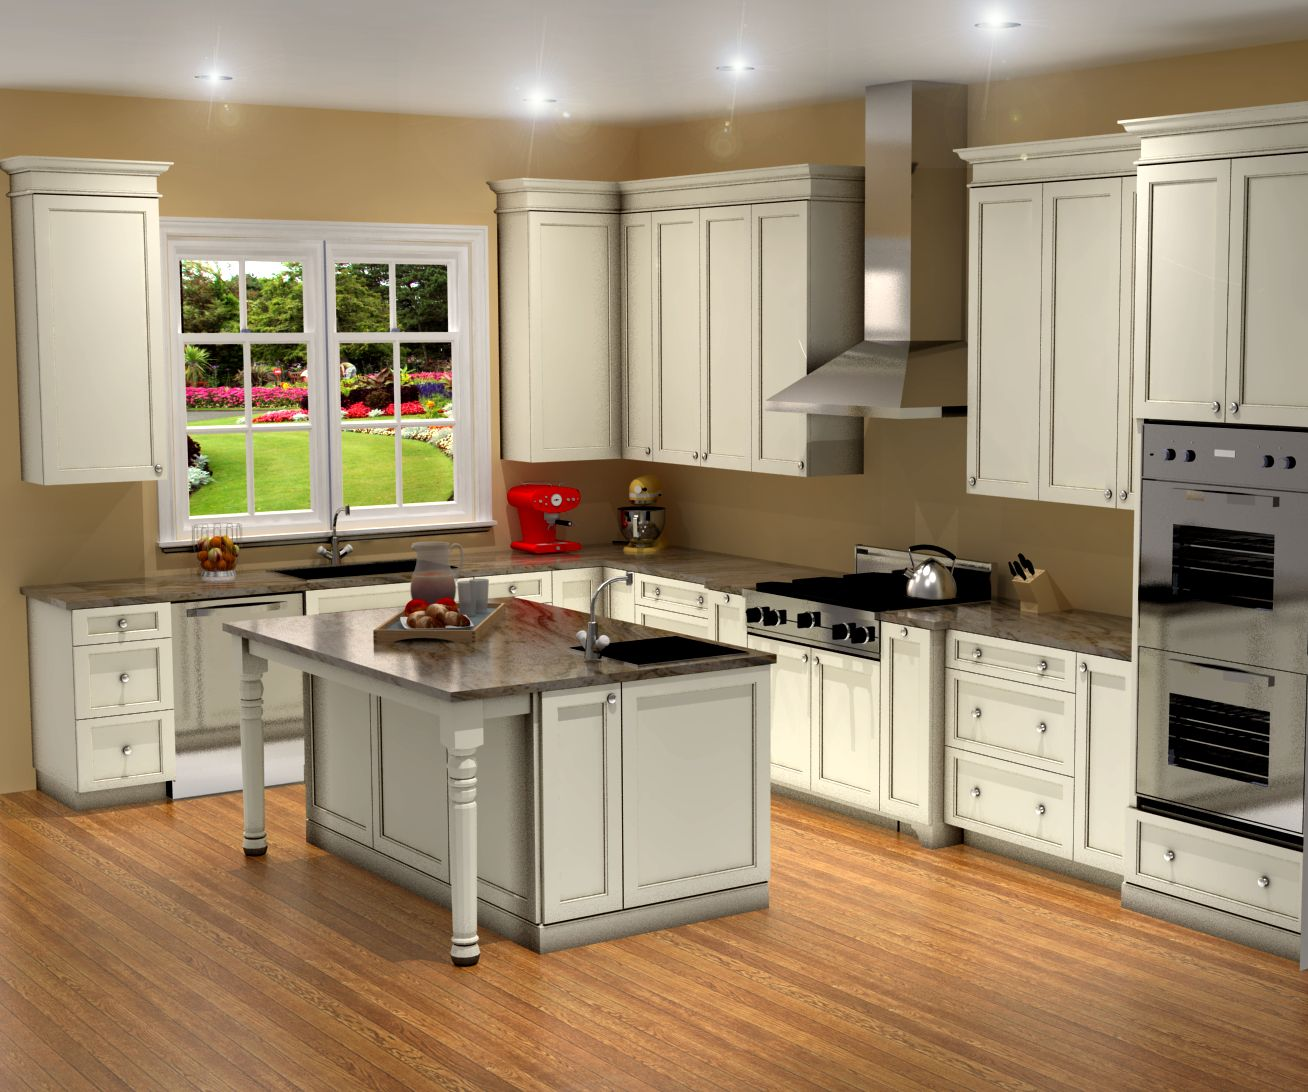 Traditional white kitchen design 3d rendering nick for Kitchen design ideas pictures